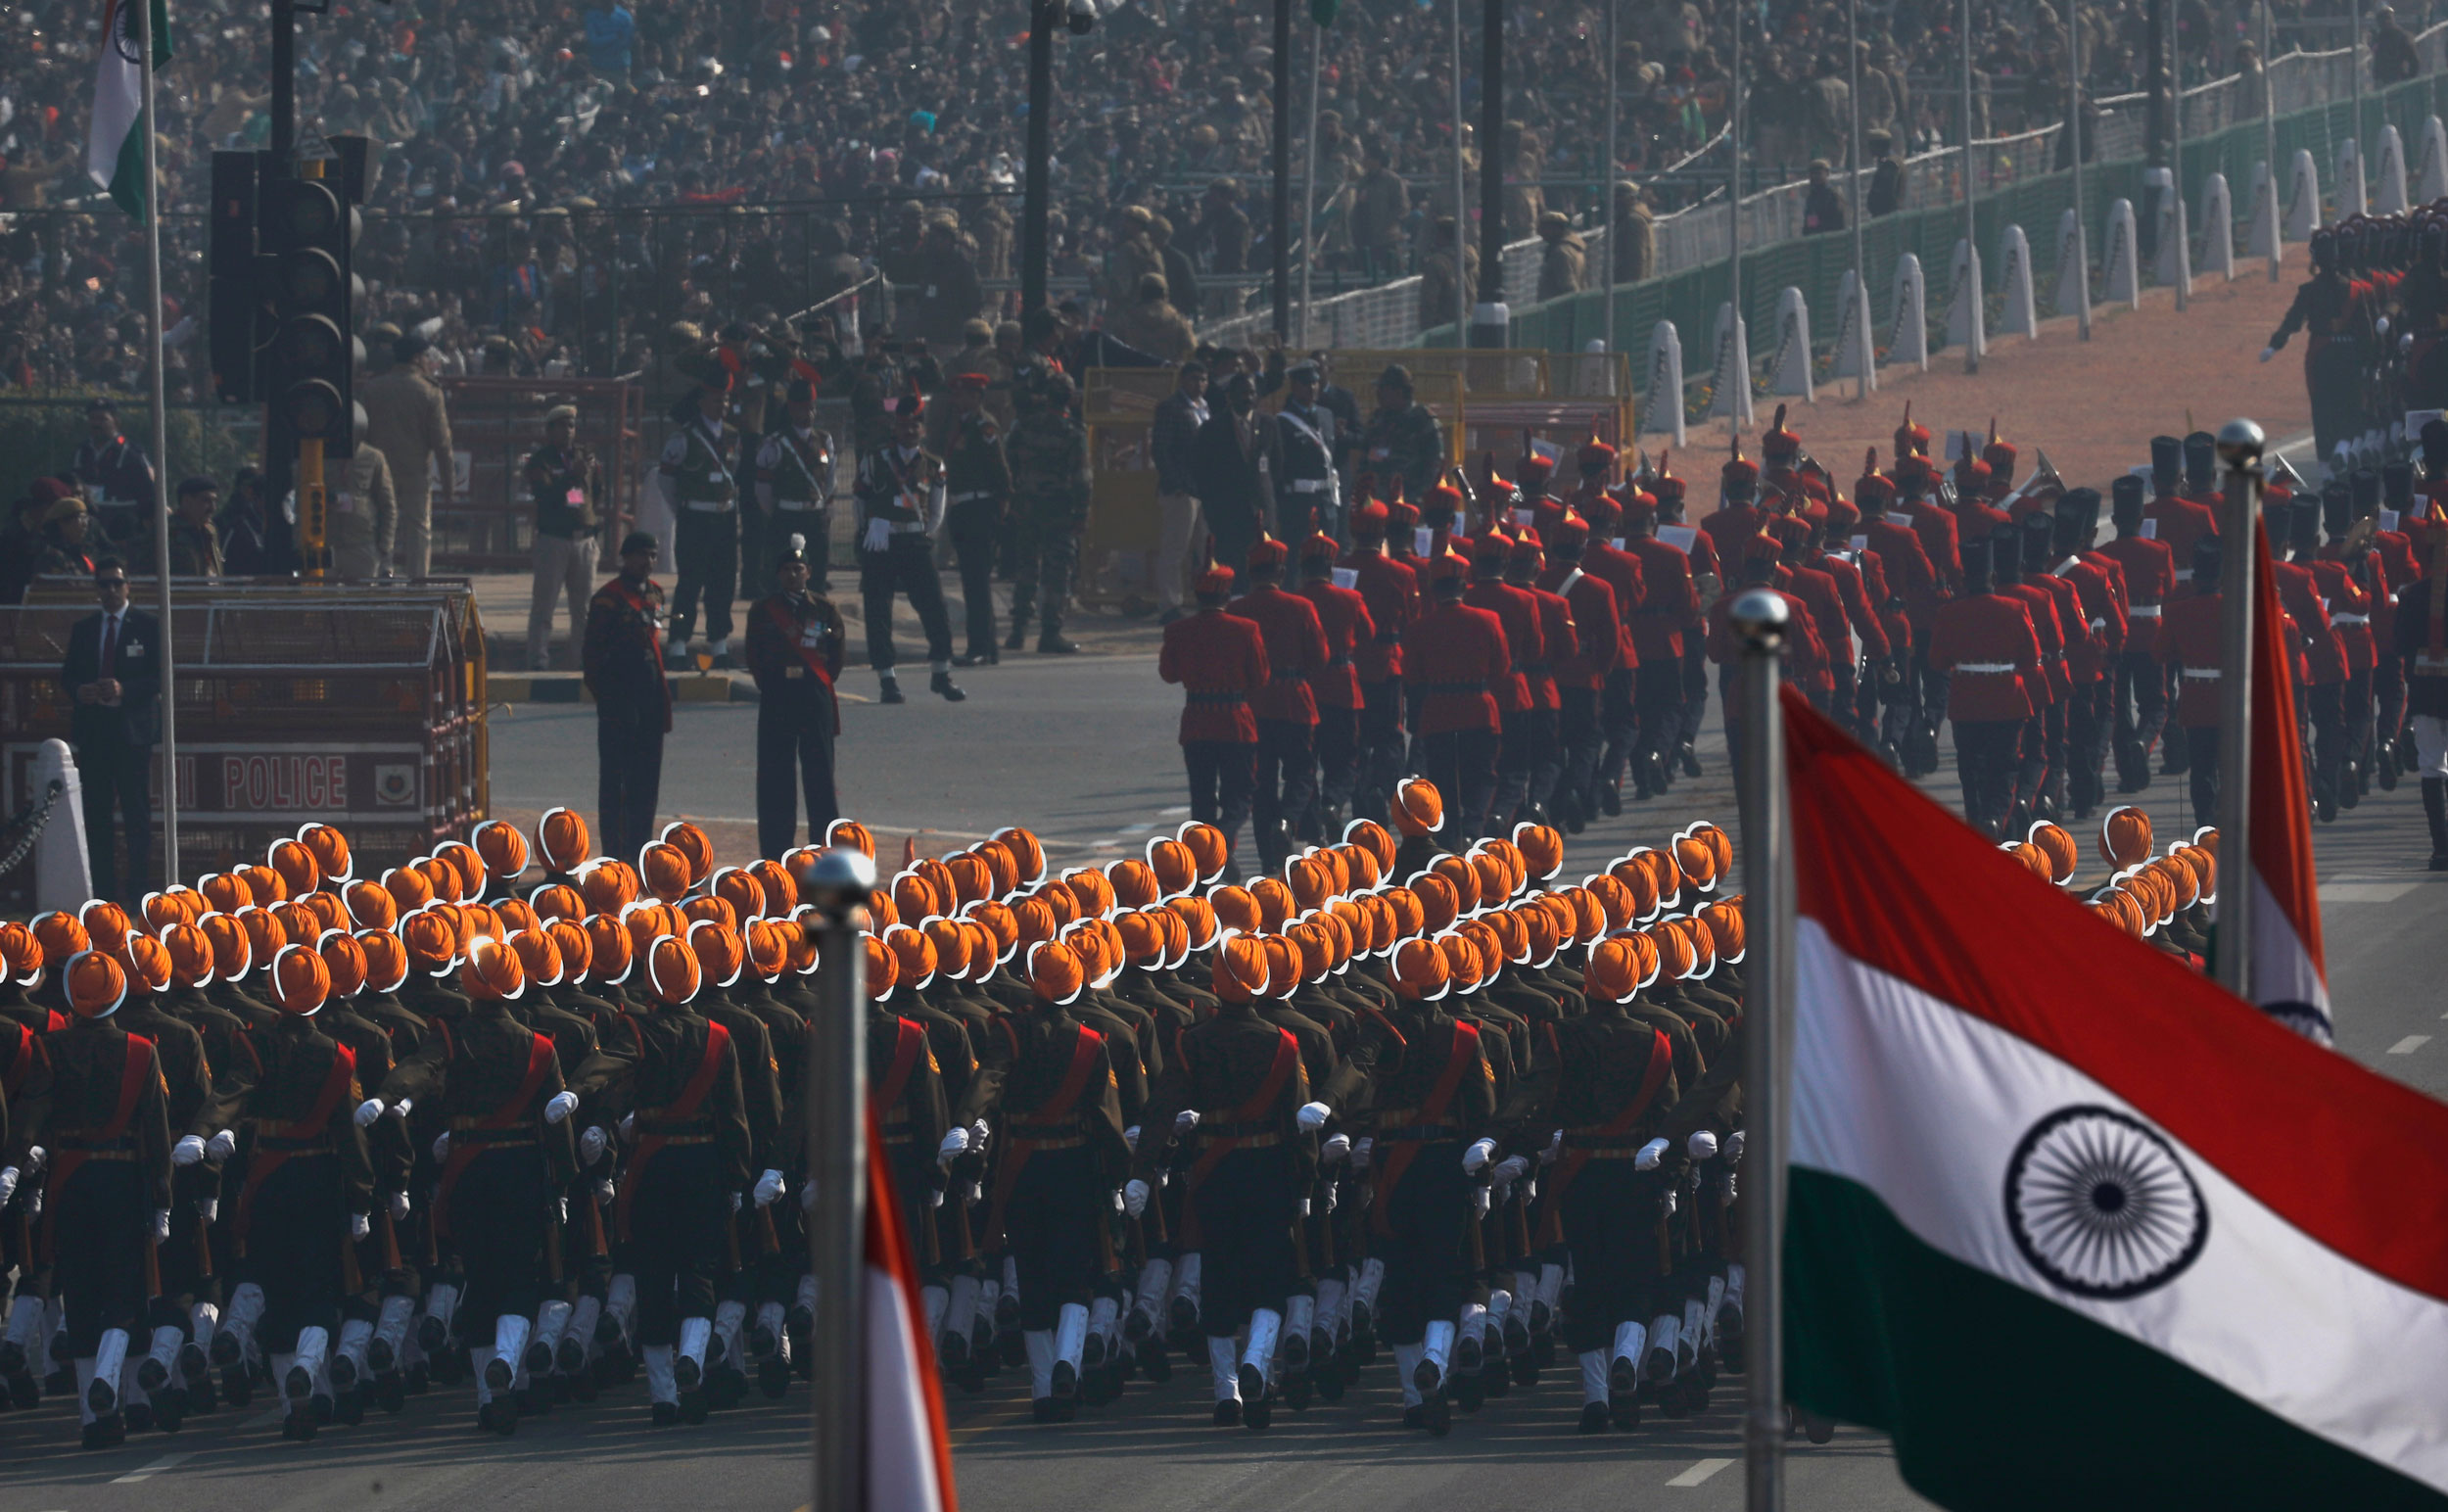 The Indian Republic Day parade at Rajpath in New Delhi on Sunday.